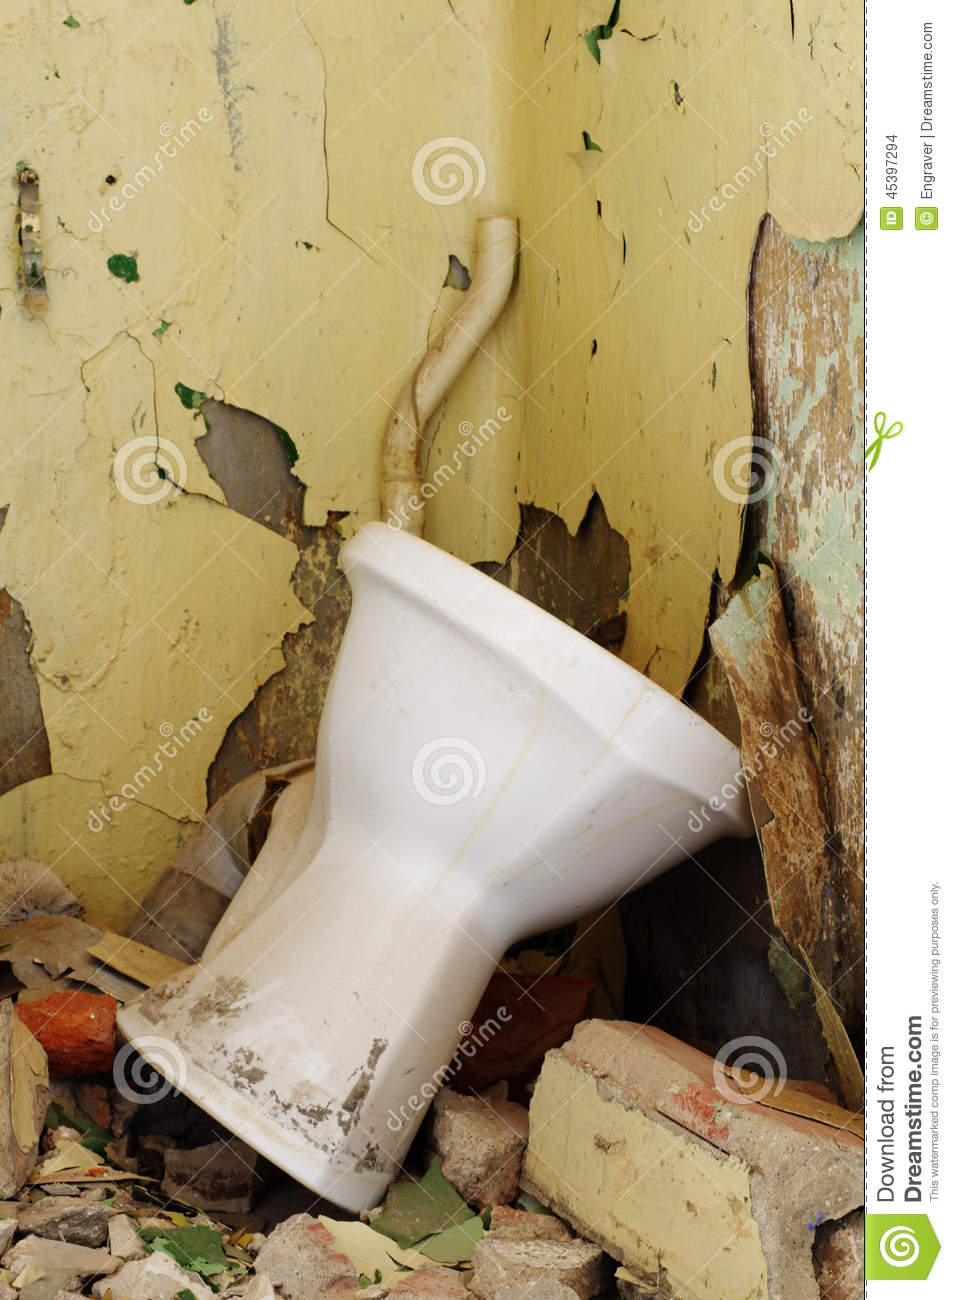 Old Toilet Bowl Stock Photo Image Of Ceramic Water